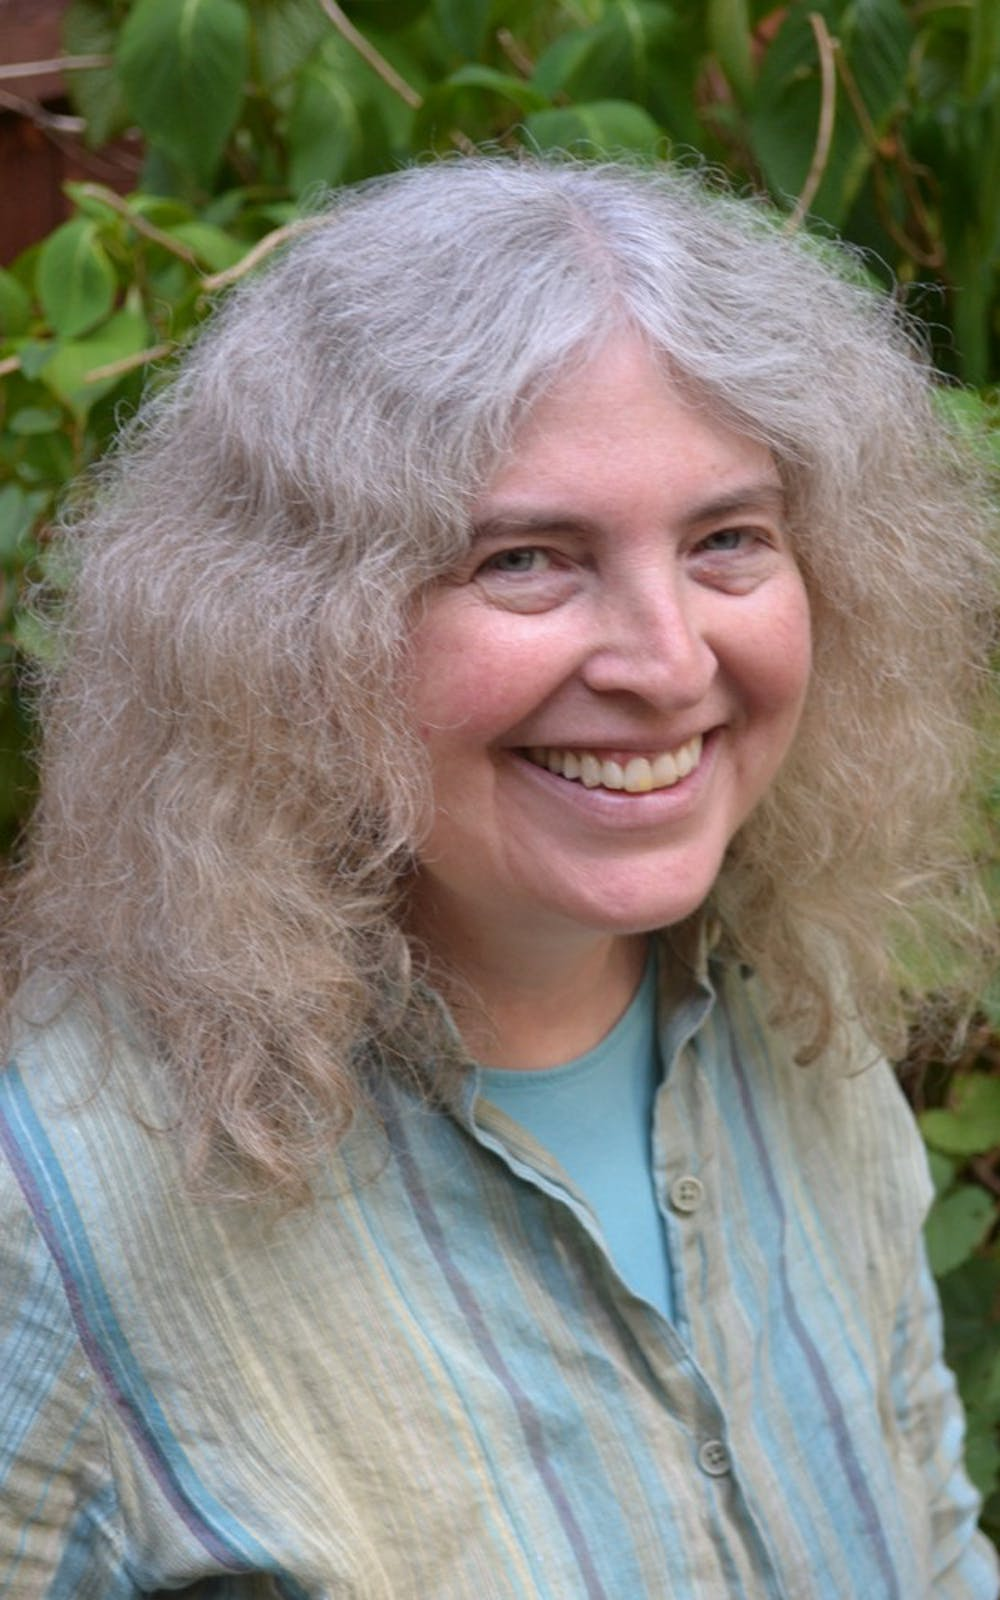 <p>Amy Kaufman Burk, 58, will be donating 50 percent of the profits from her two novels to the LGBTQ+ Culture Center during March. Her novels explore LGBT themes, and she said the center at IU is a model organization to donate to.</p>